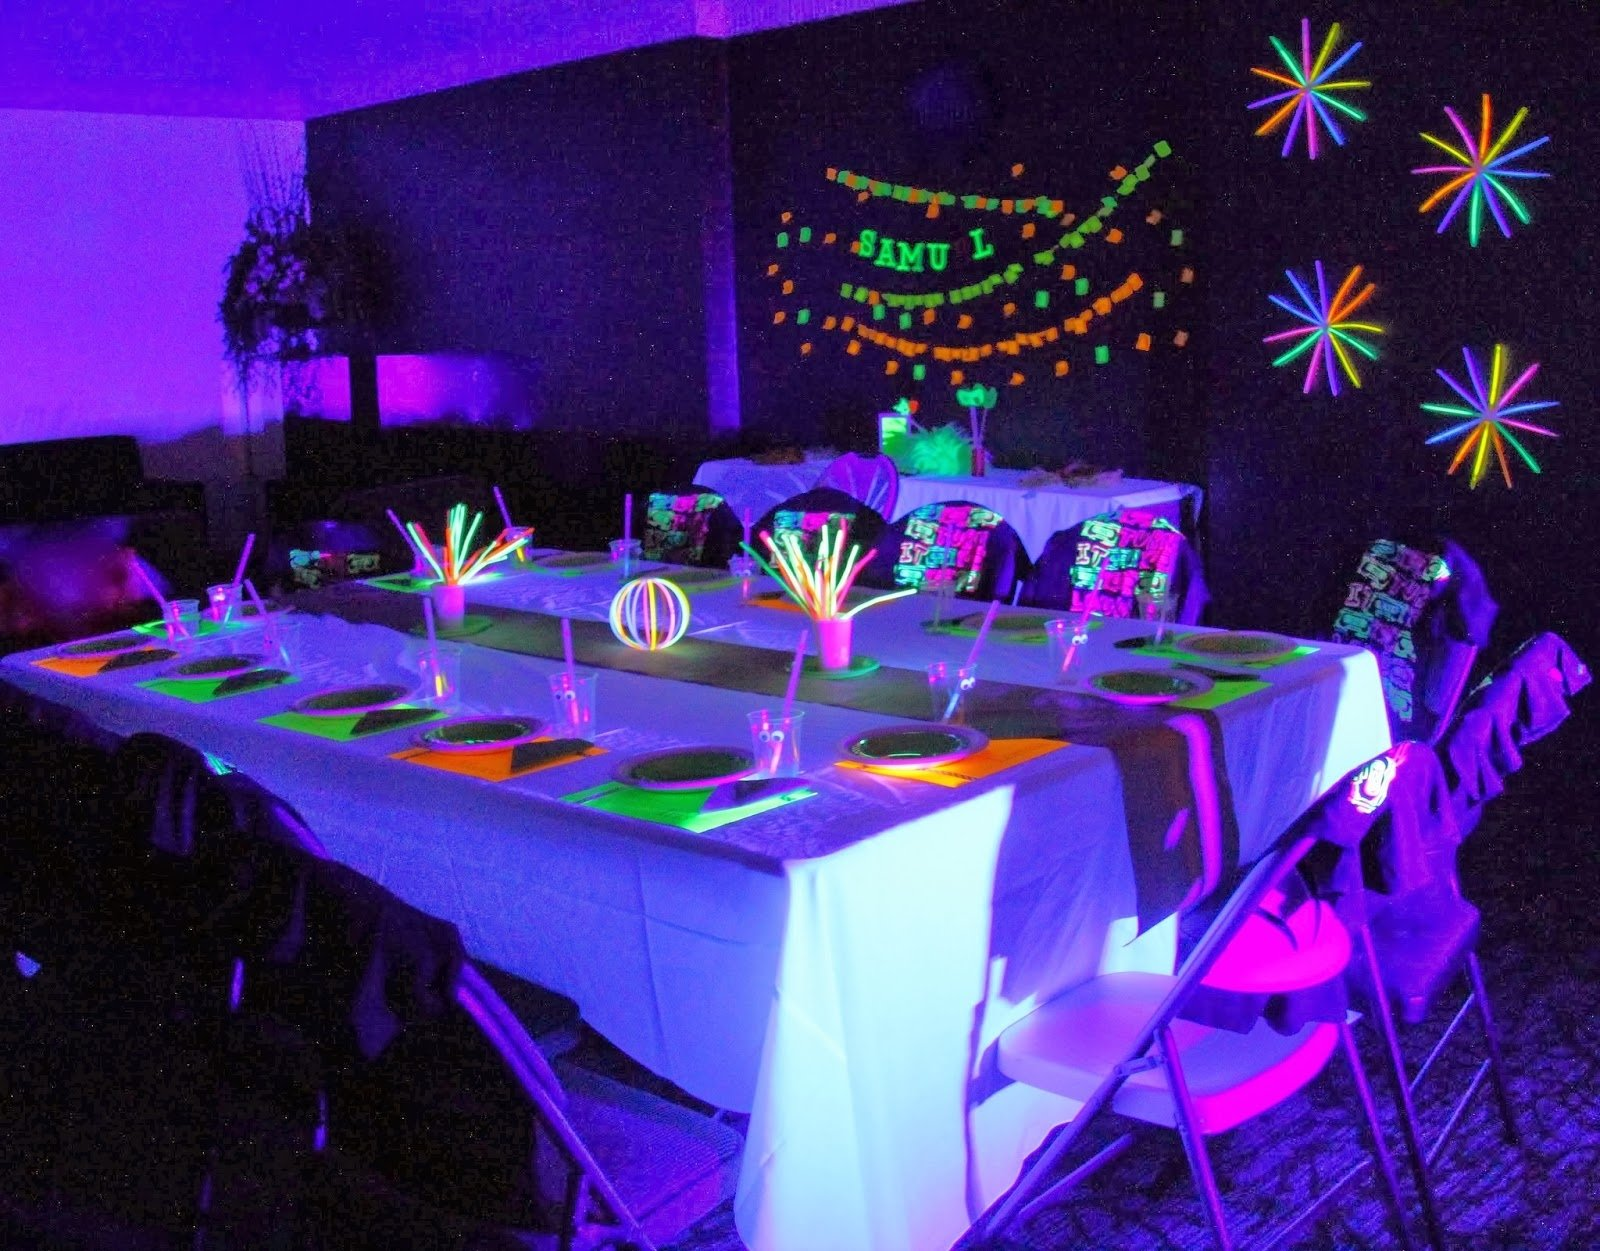 10 Unique Ideas For An 18Th Birthday 18th birthday party ideas that are grand for guys whomestudio 4